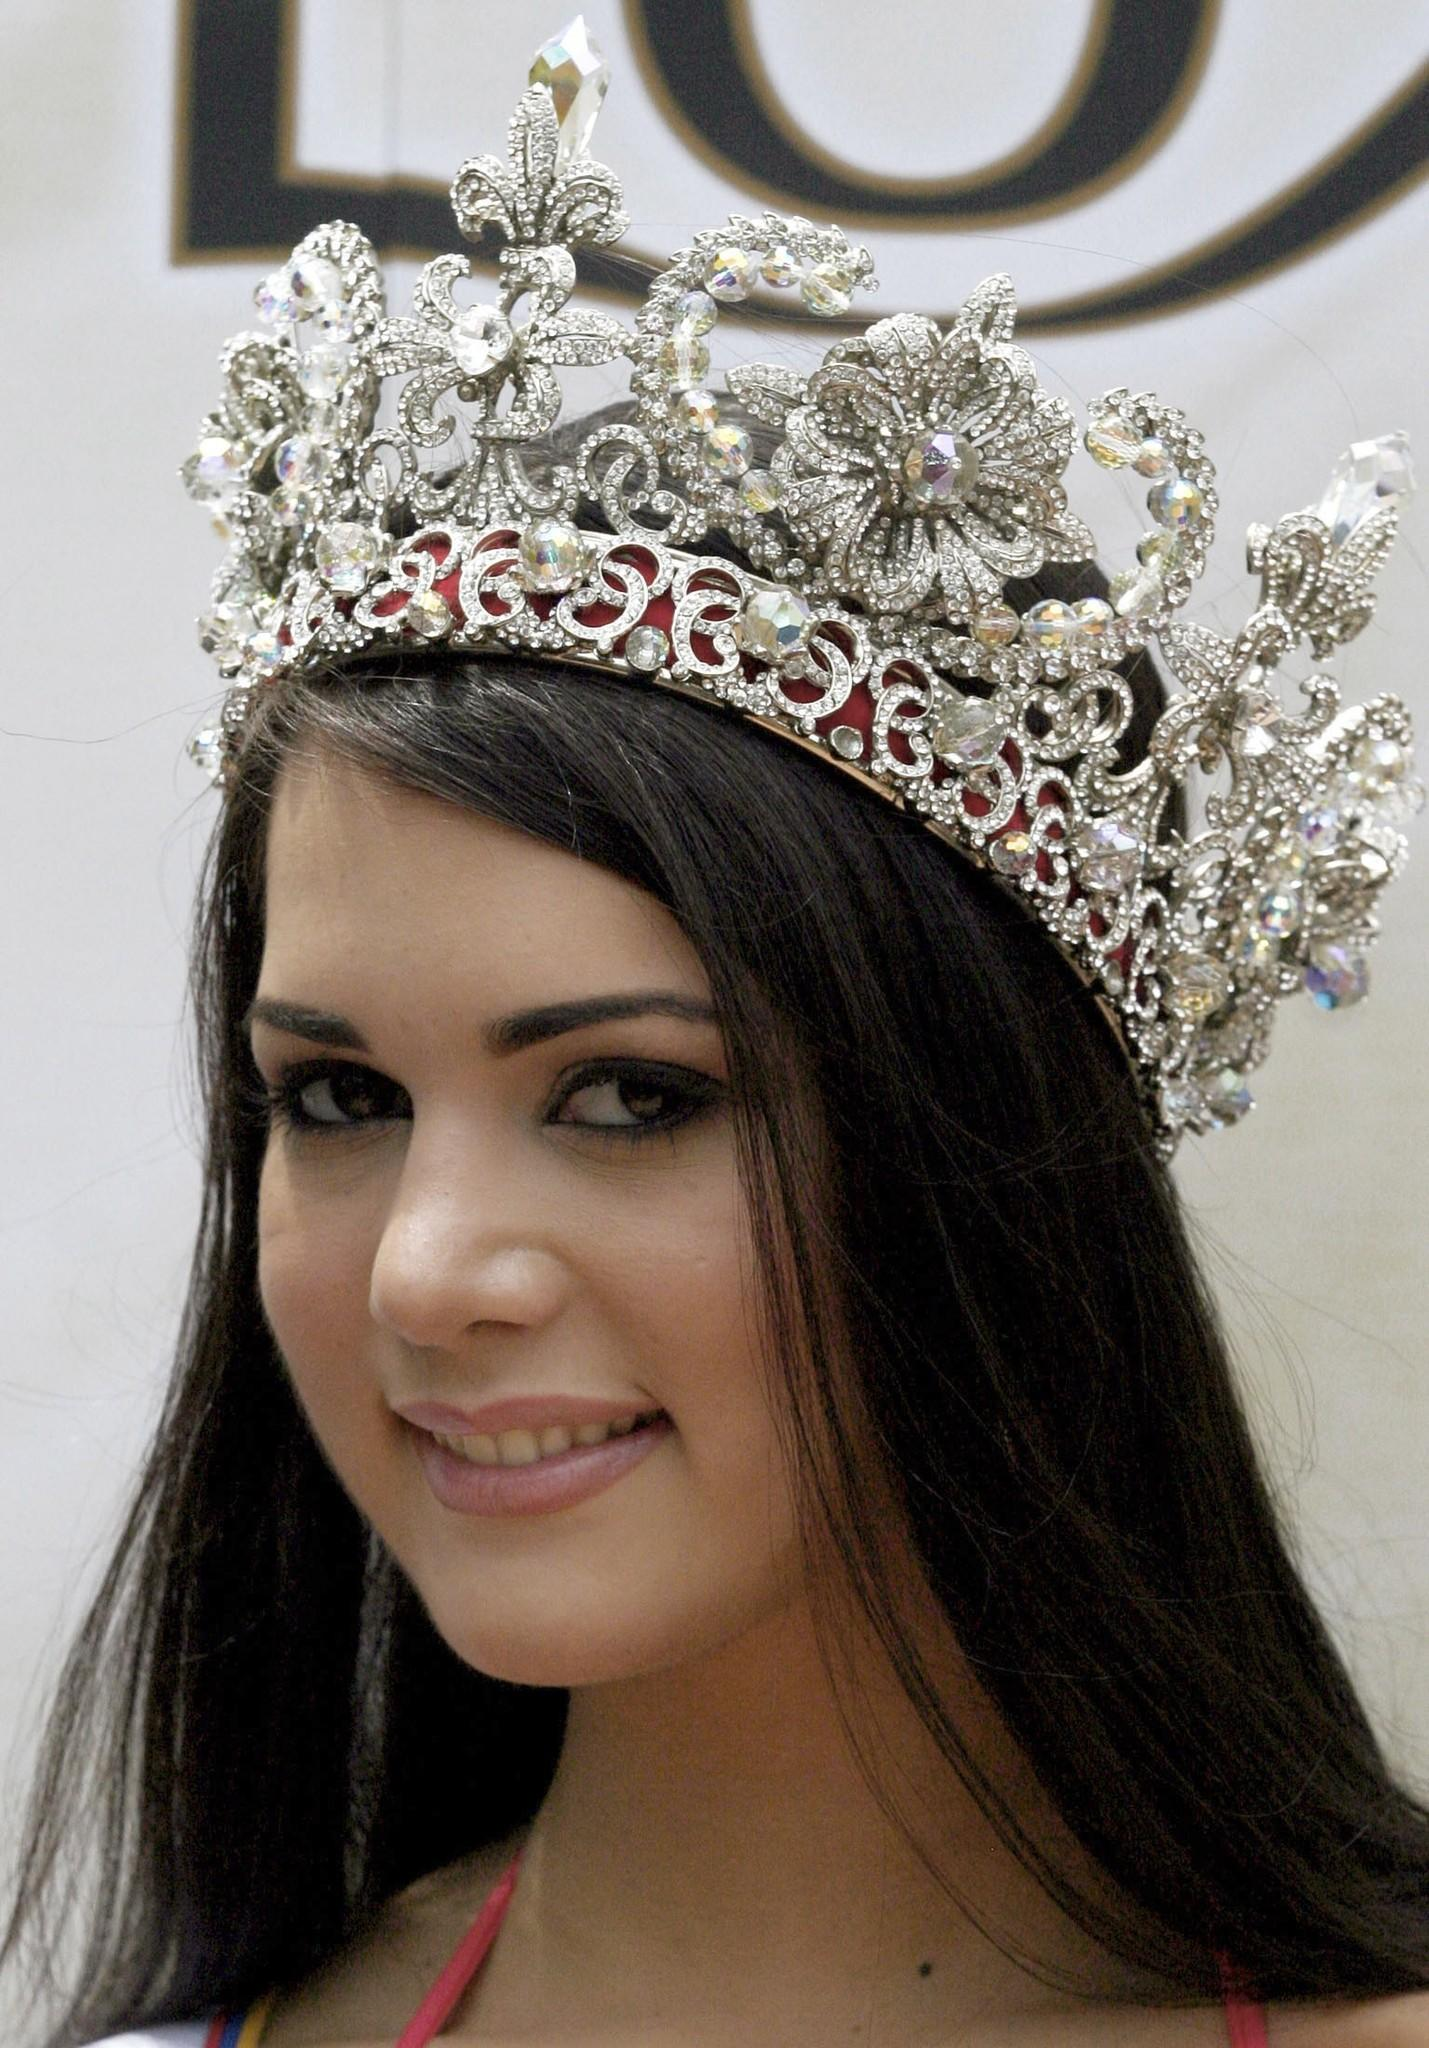 The Miss Venezuela beauty pageant winner Monica Spear smiles during her presentation to the media after the contest final in Caracas in this file picture taken September 24, 2004. Spear, 29, former Miss Venezuela, model and telenovela actress and her Irish husband Thomas Henry Berry, 49, were shot dead after an attempted robbery late January 6, 2014, according to police and local media. REUTERS/Howard Yanes/Files (VENEZUELA - Tags: CRIME LAW OBITUARY) ORG XMIT: VEN01